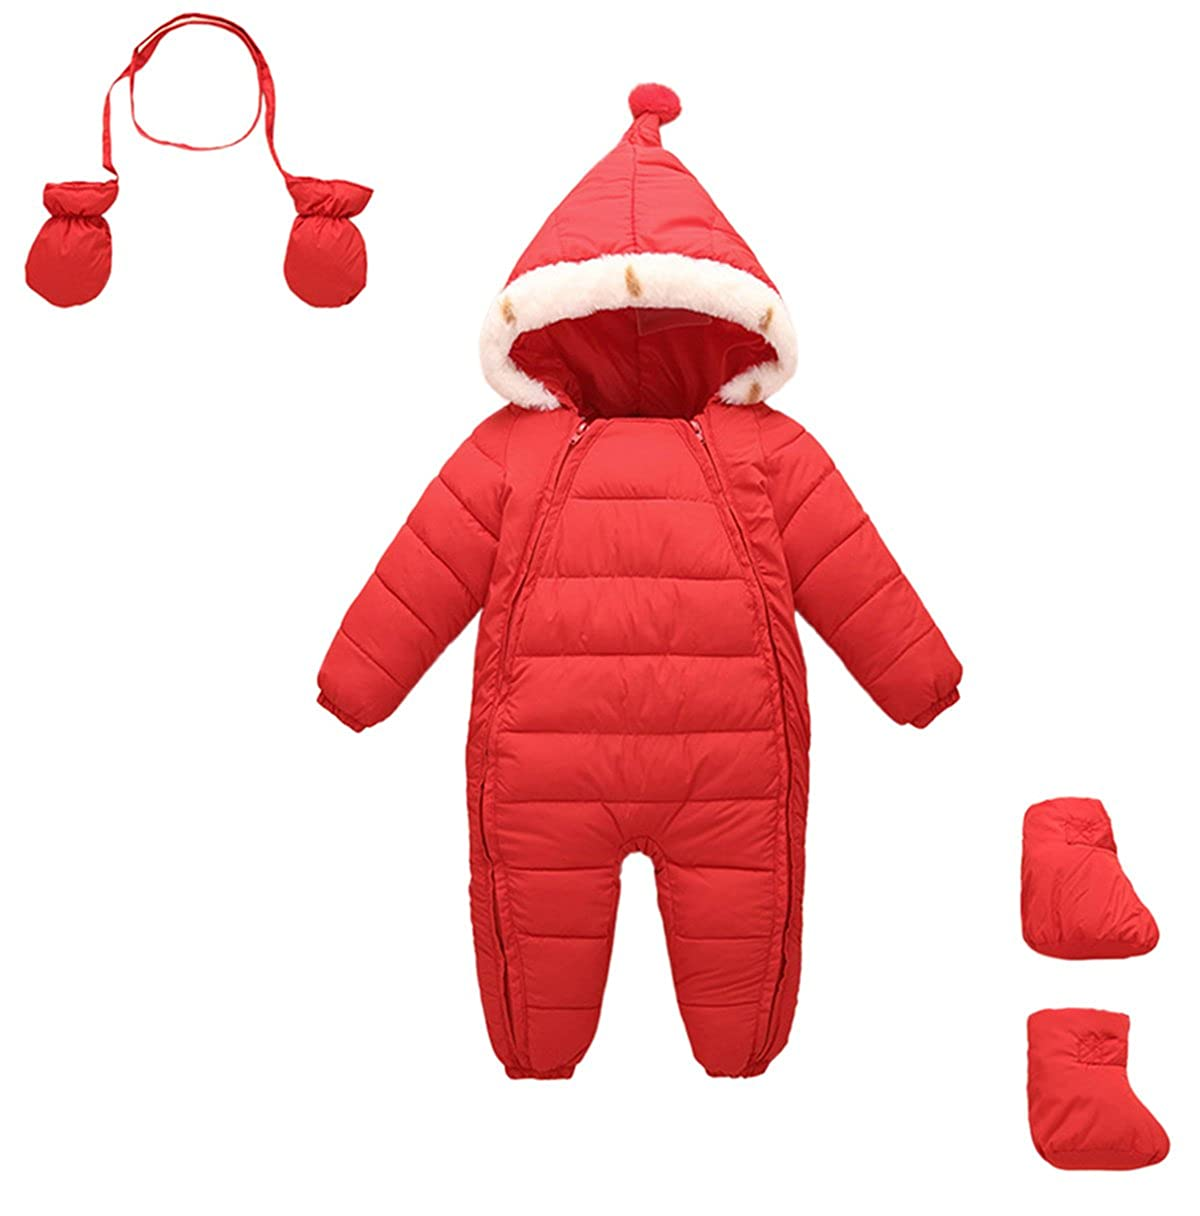 Mumuzhu 3 Piece Baby Boys Girls Down Snowsuit Winter Thick Romper Jumpsuit 1-2 Years